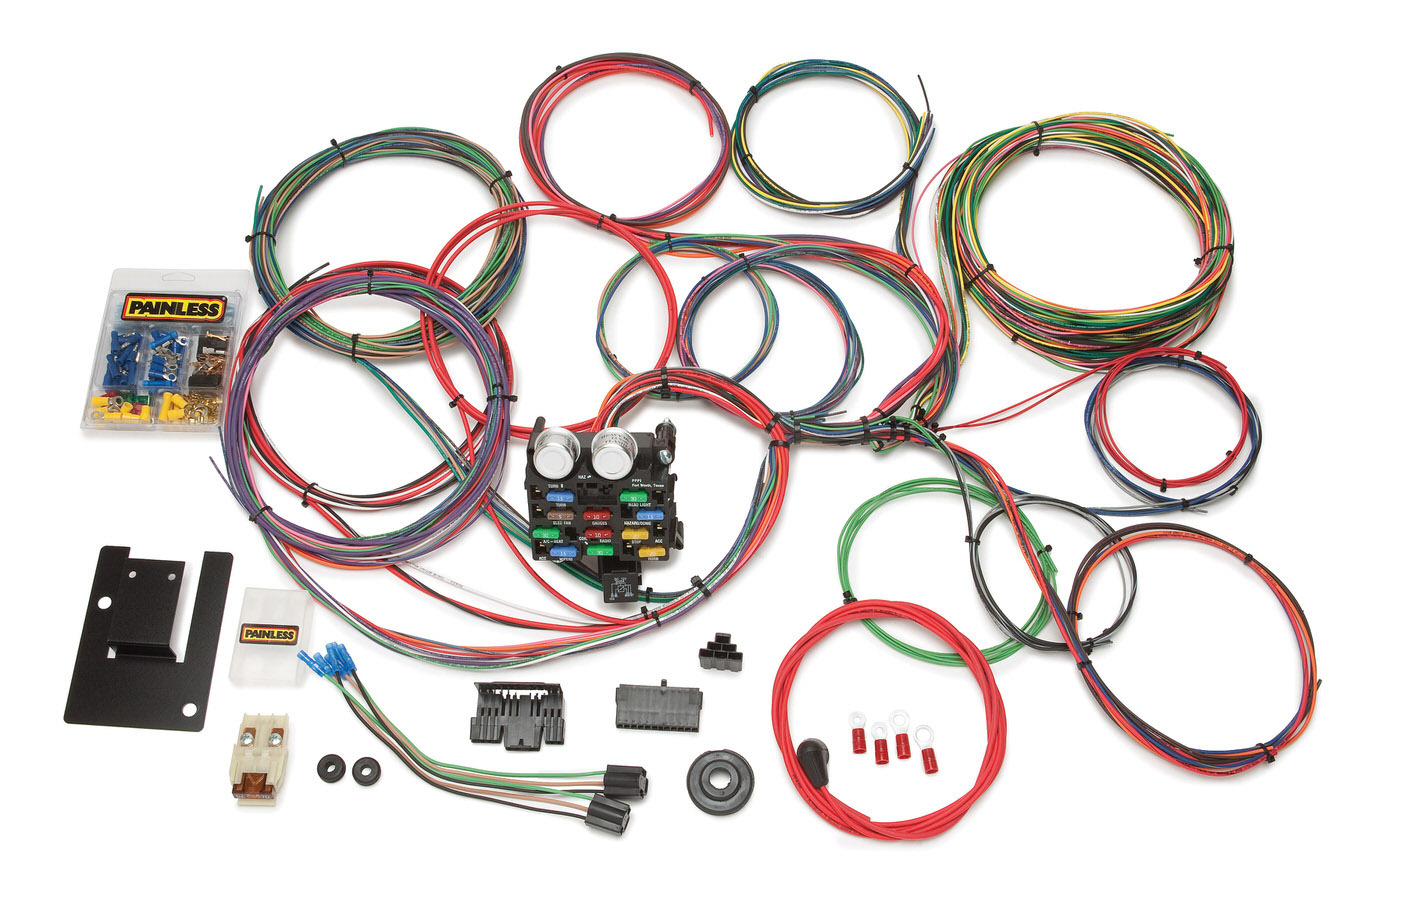 Painless Wiring 20107 Car Wiring Harness, Classic Tri-Five Chevy, Complete, 21 Circuit, Chevy Fullsize Car 1955-57, Kit